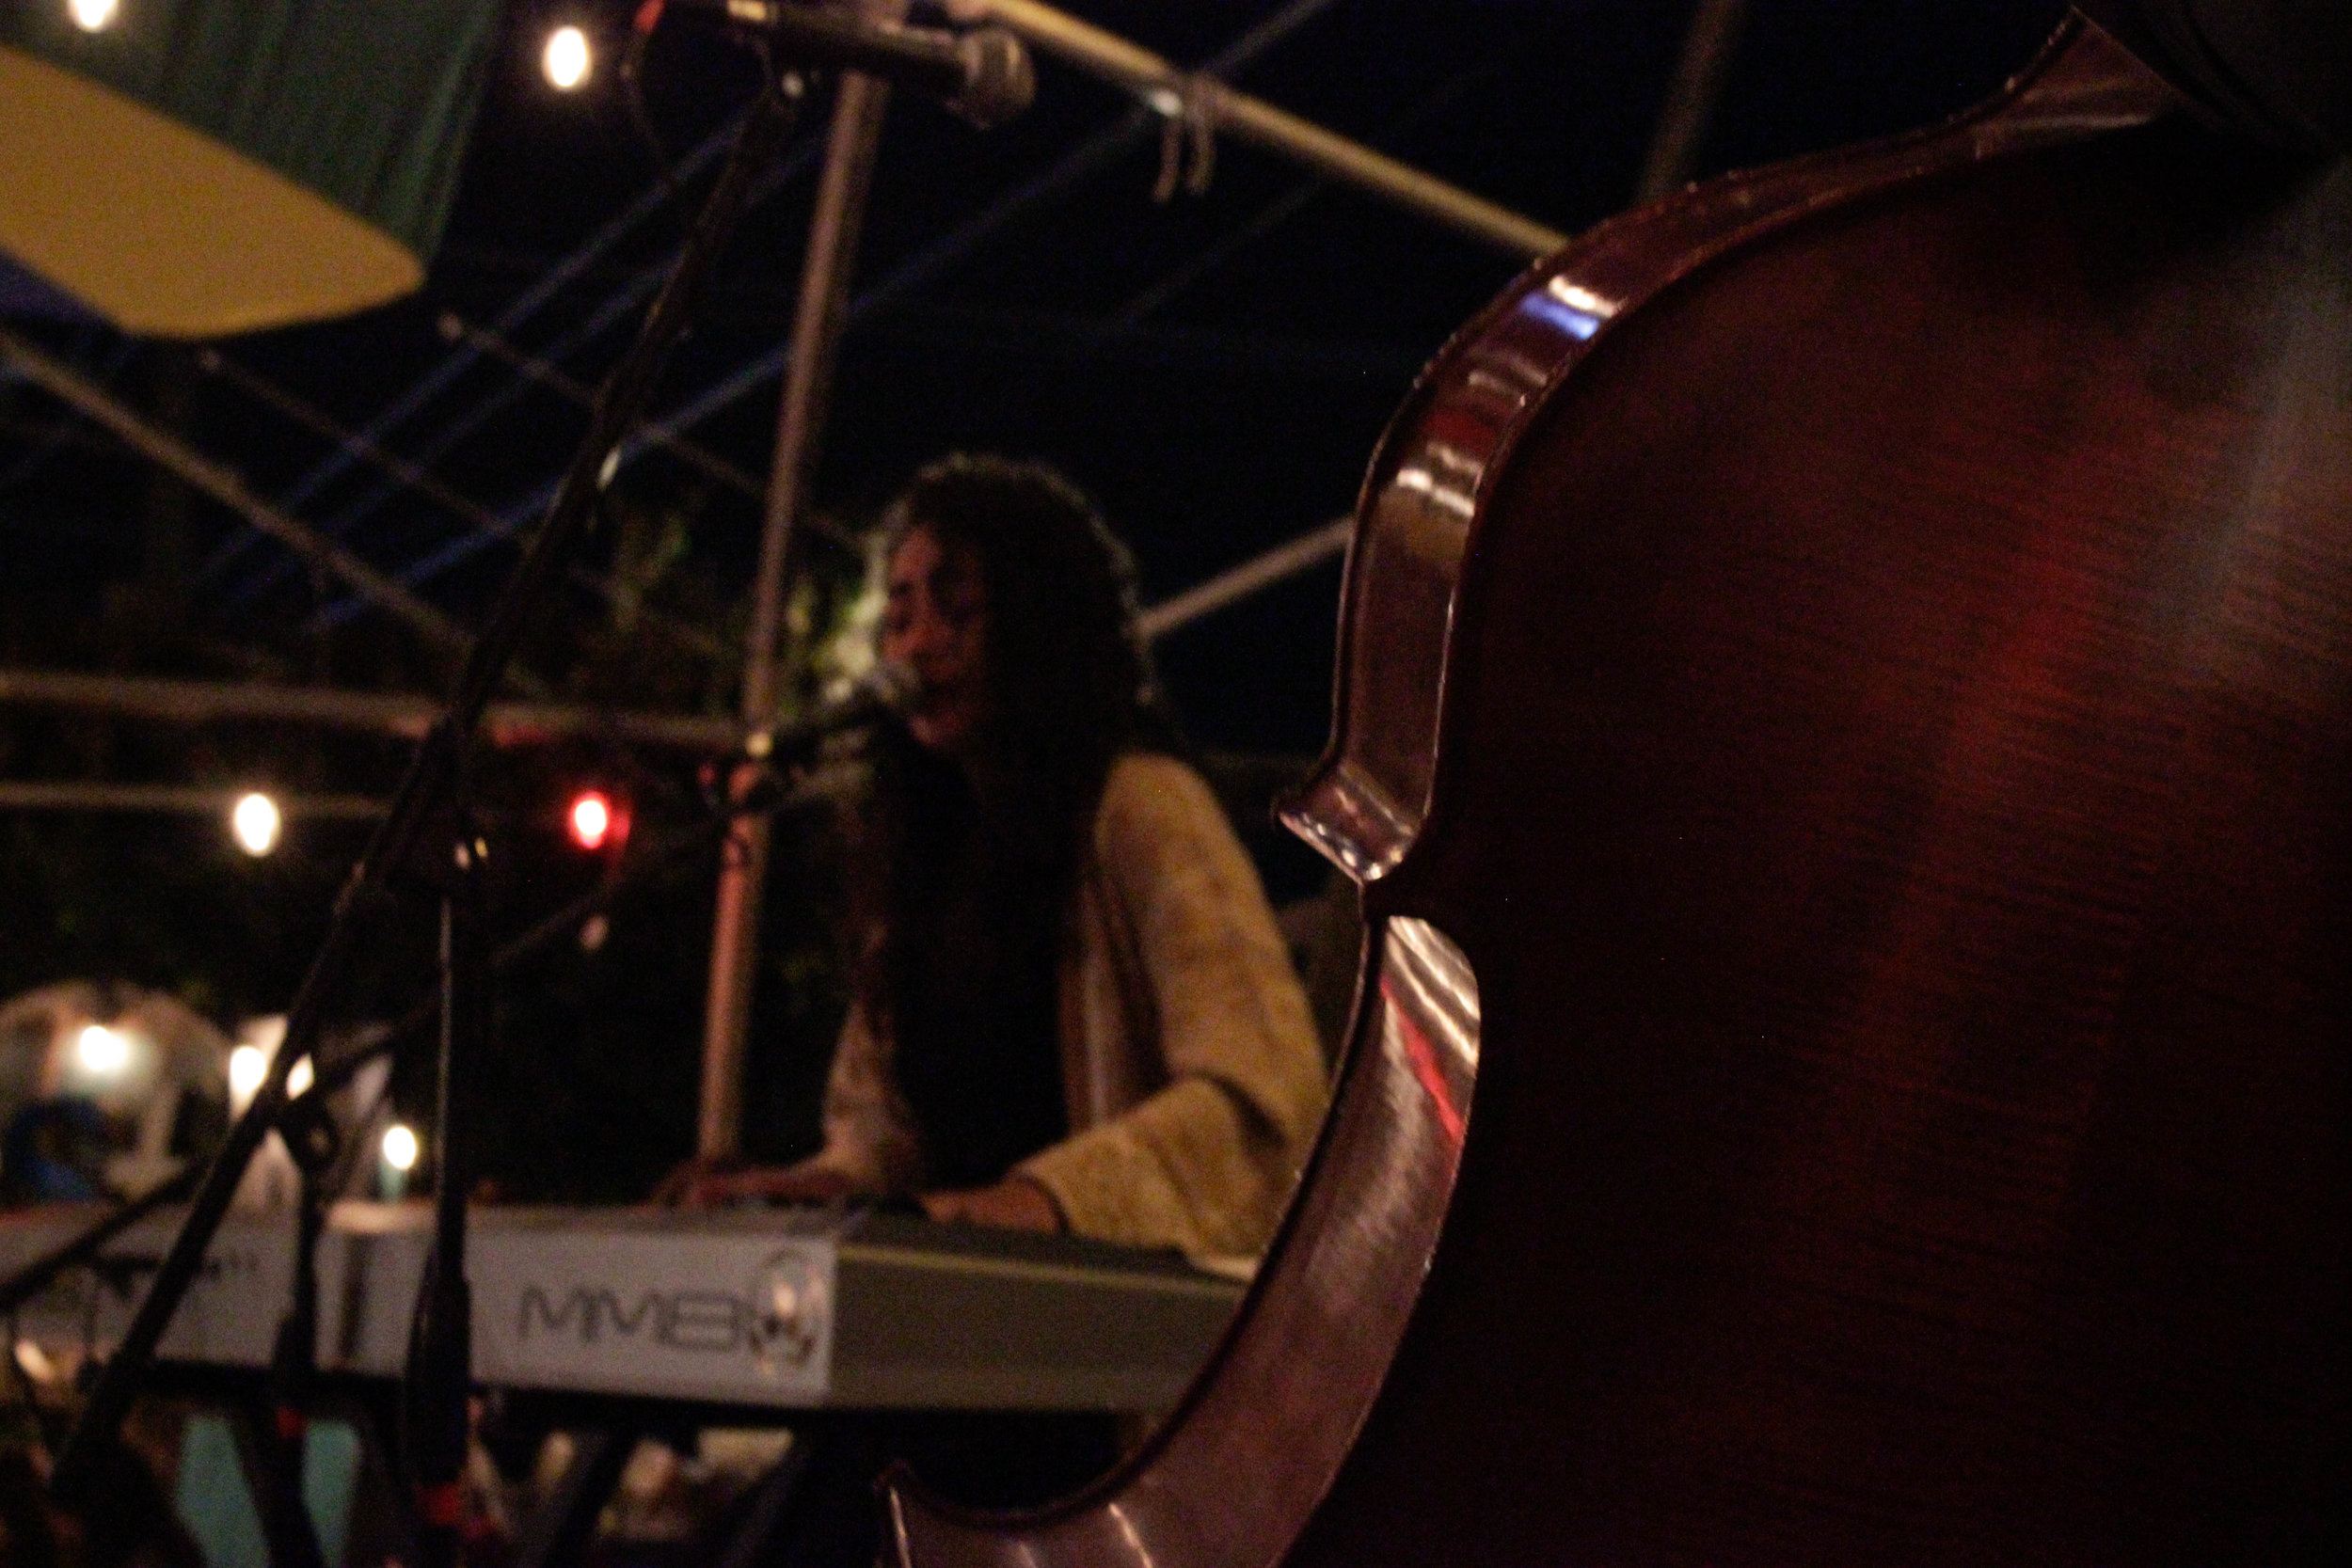 Allysa Grace serenading the audience on keys. Photo by Kassidy Curry.